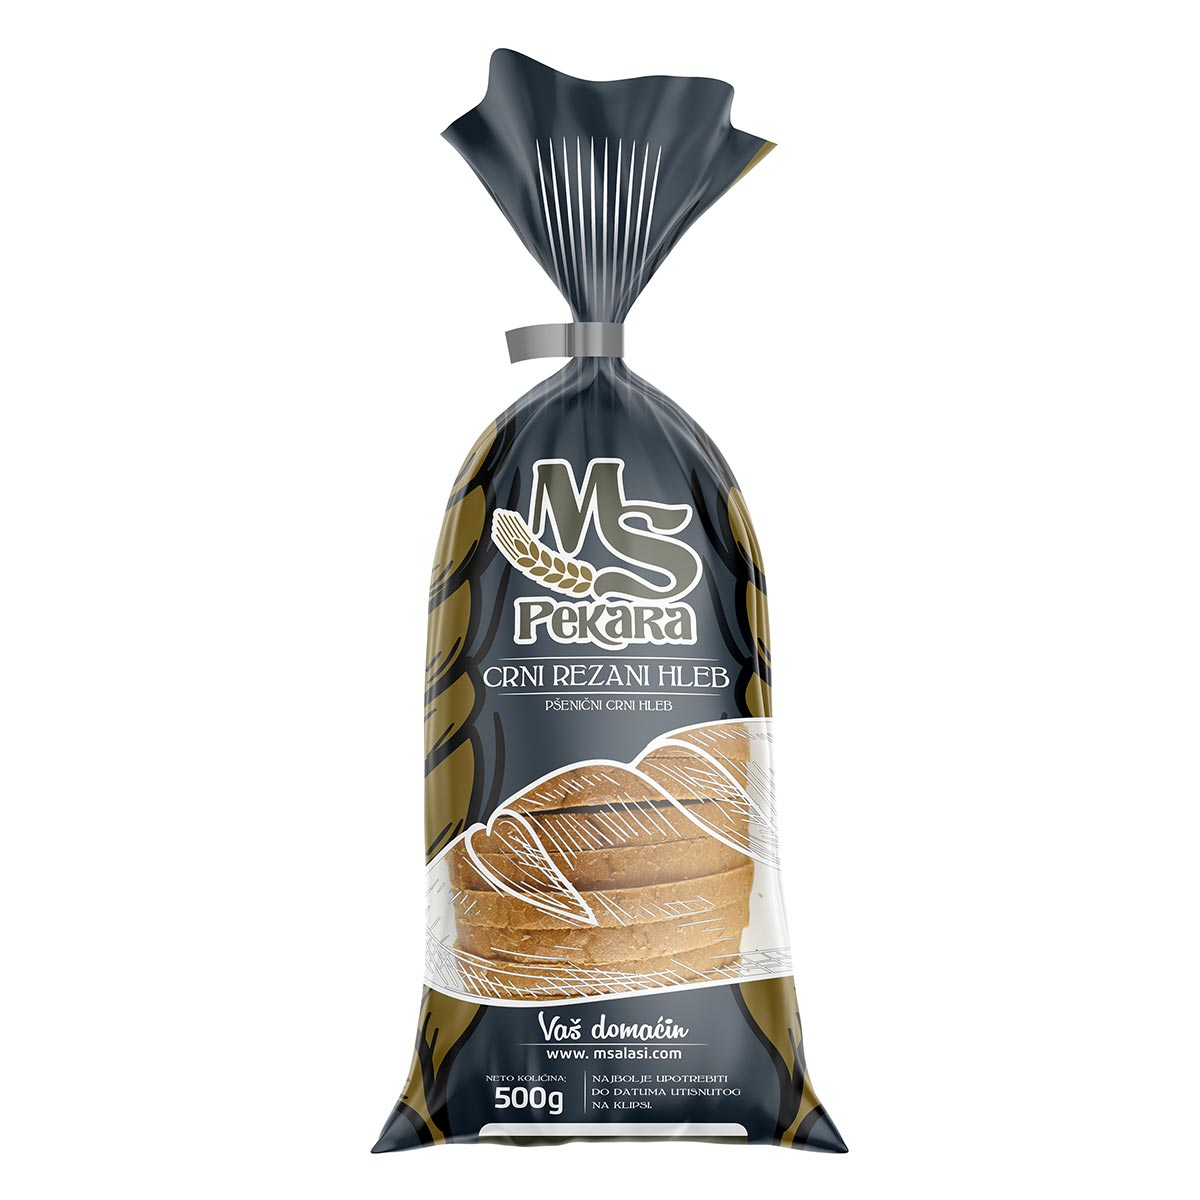 MS bread packaging design